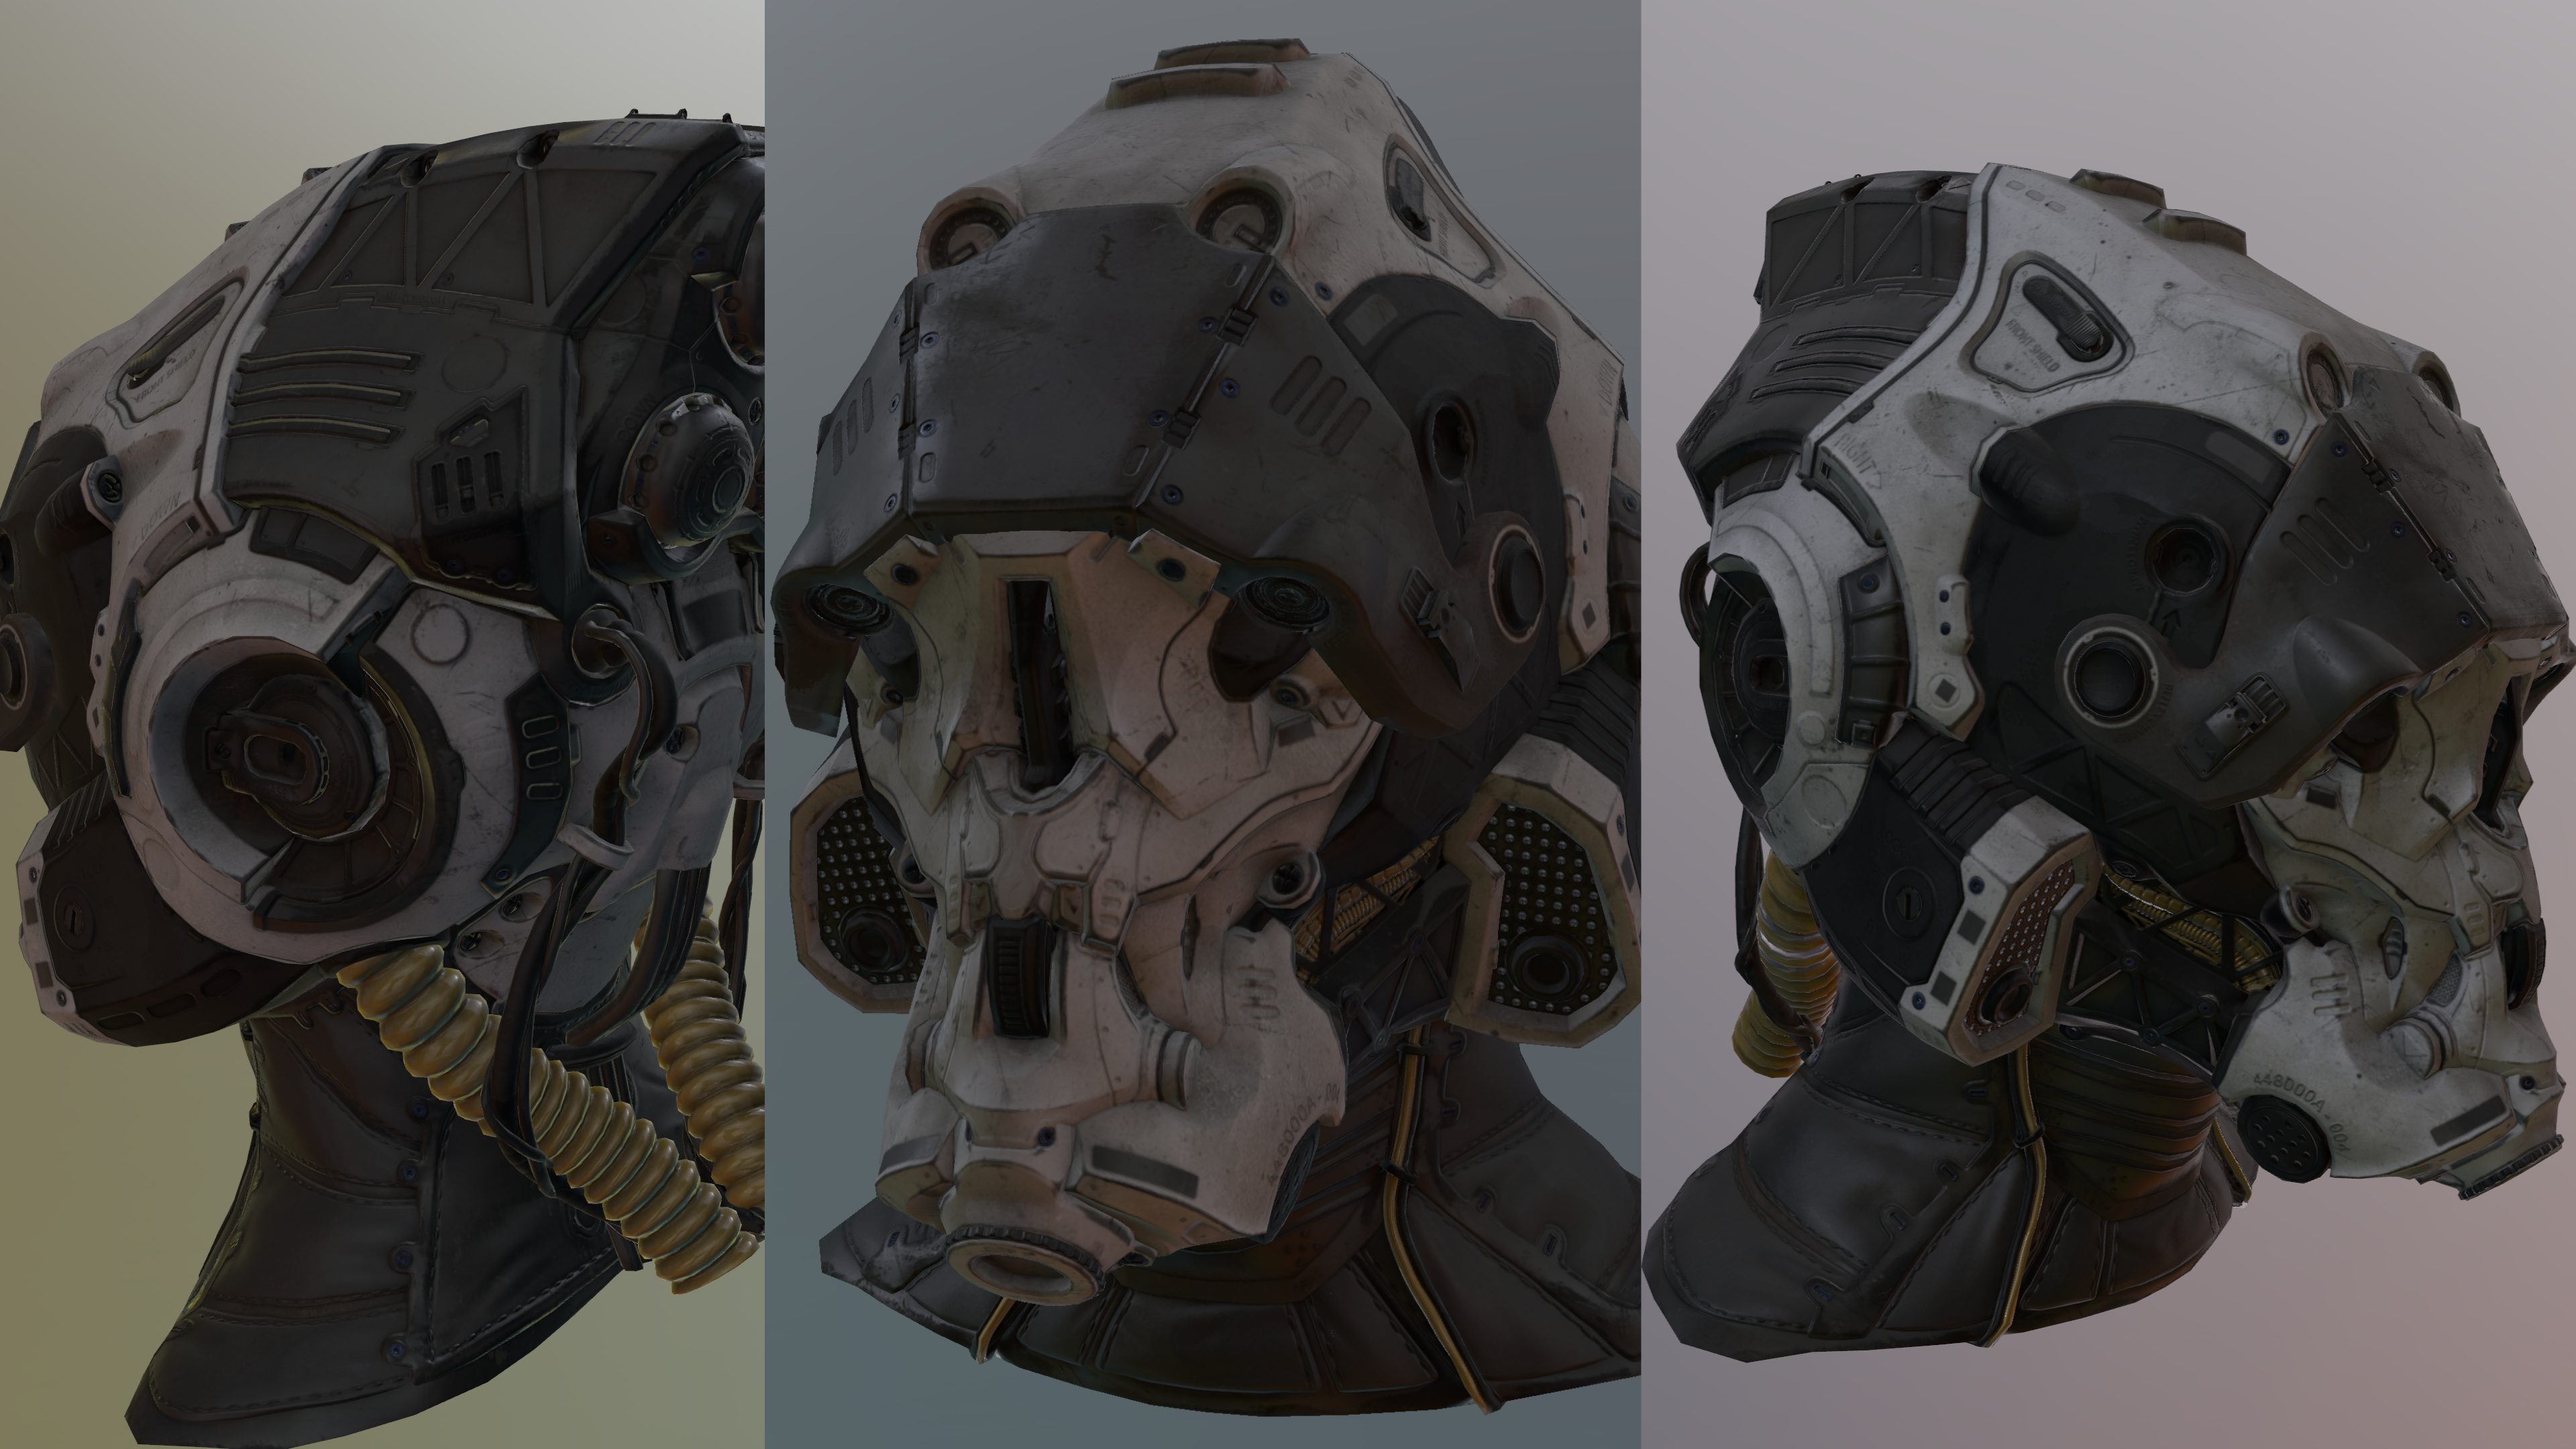 A high res Sci-Fi helmet by @msiglreith